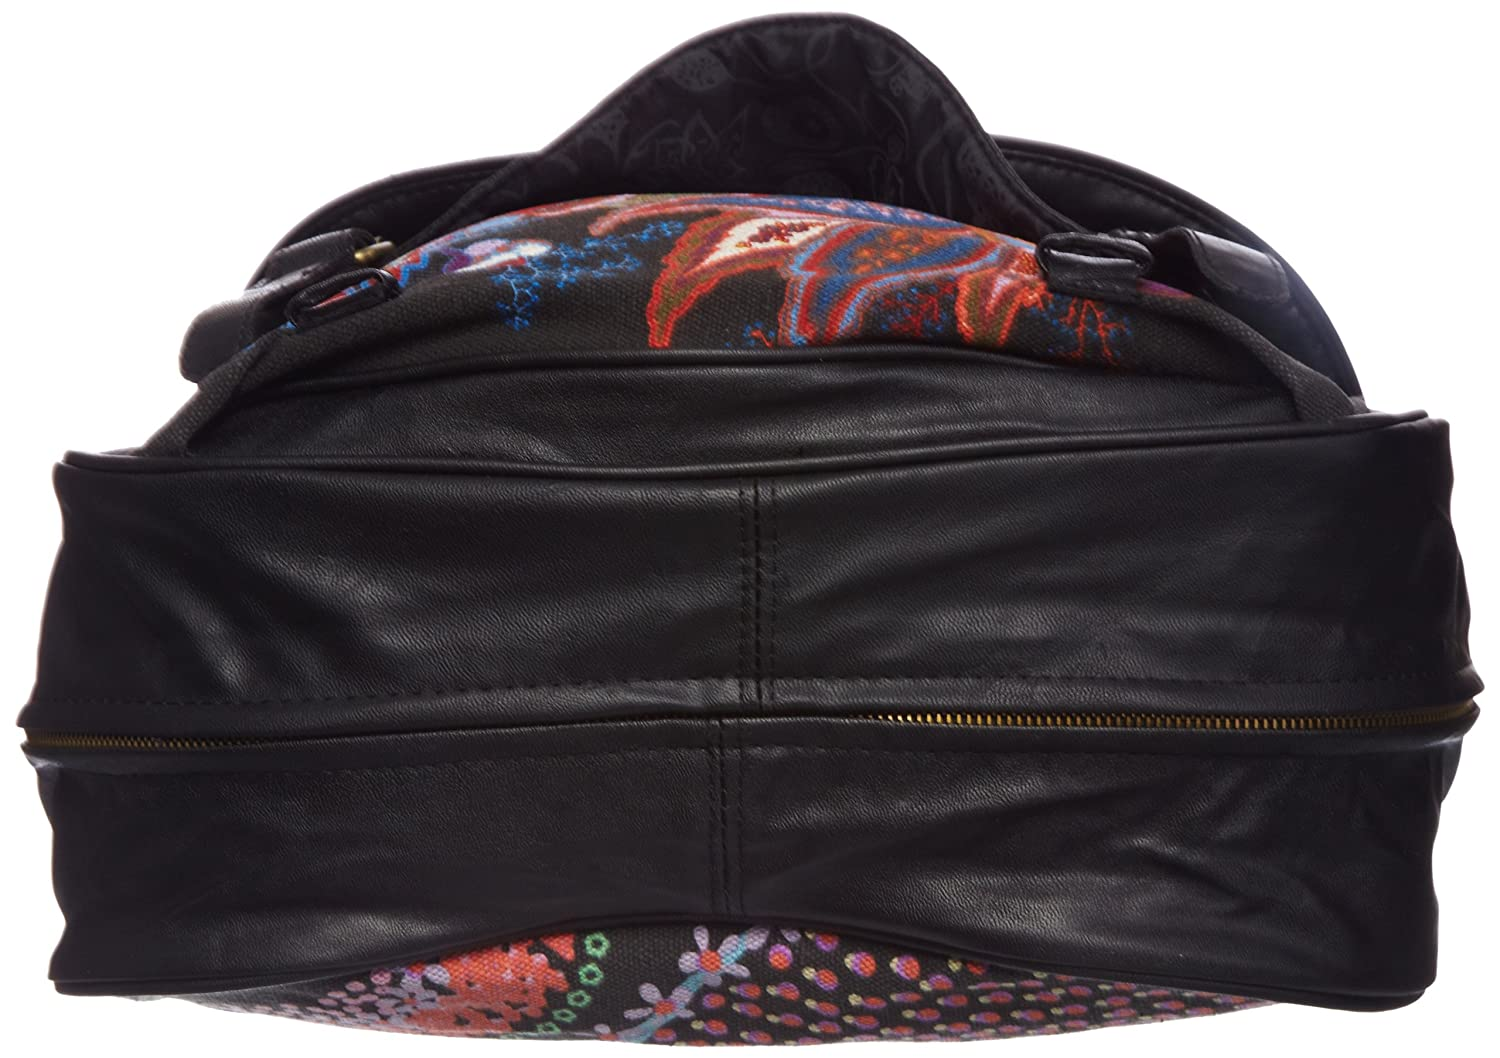 Amazon.com: Desigual Womens Cartnney Cross-Body, Black ...